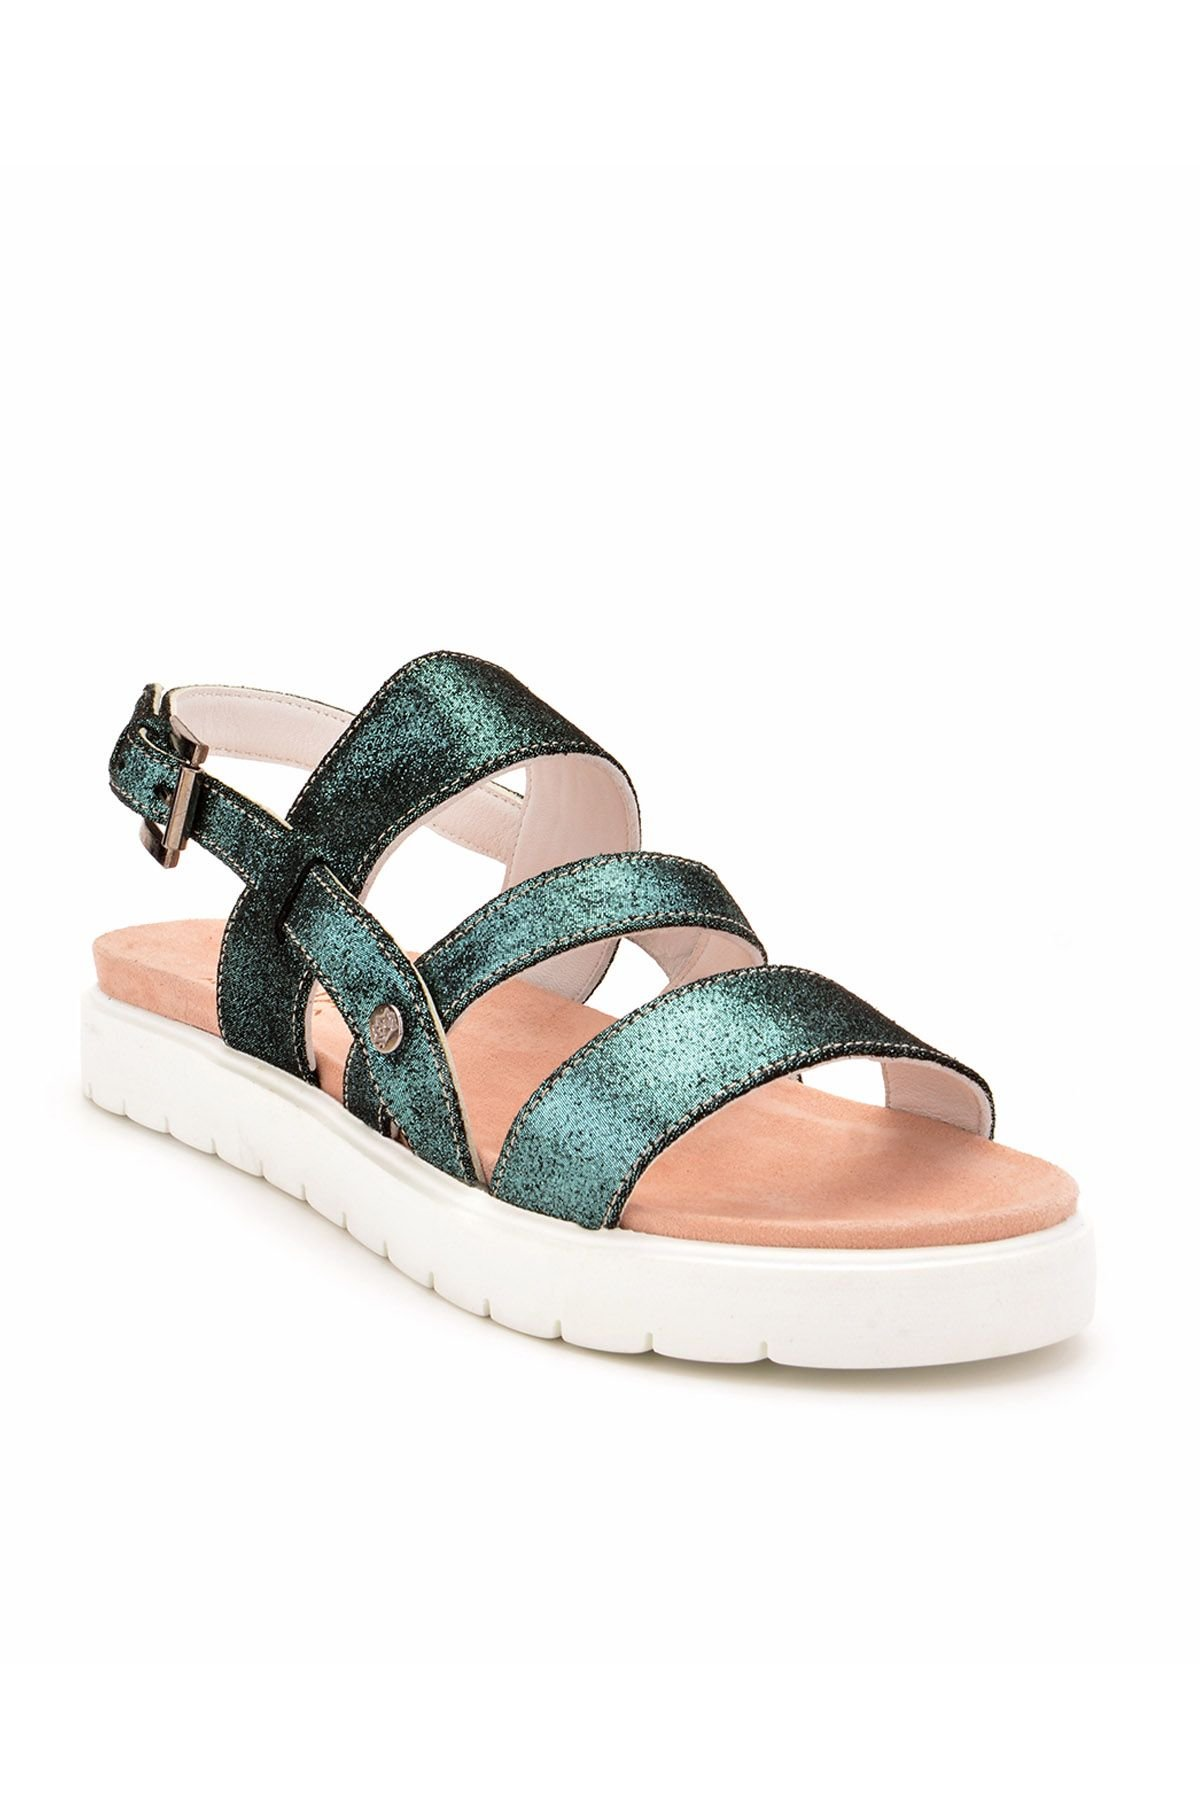 Pegia Gabrielle Women Sandals From Genuine Leather Green